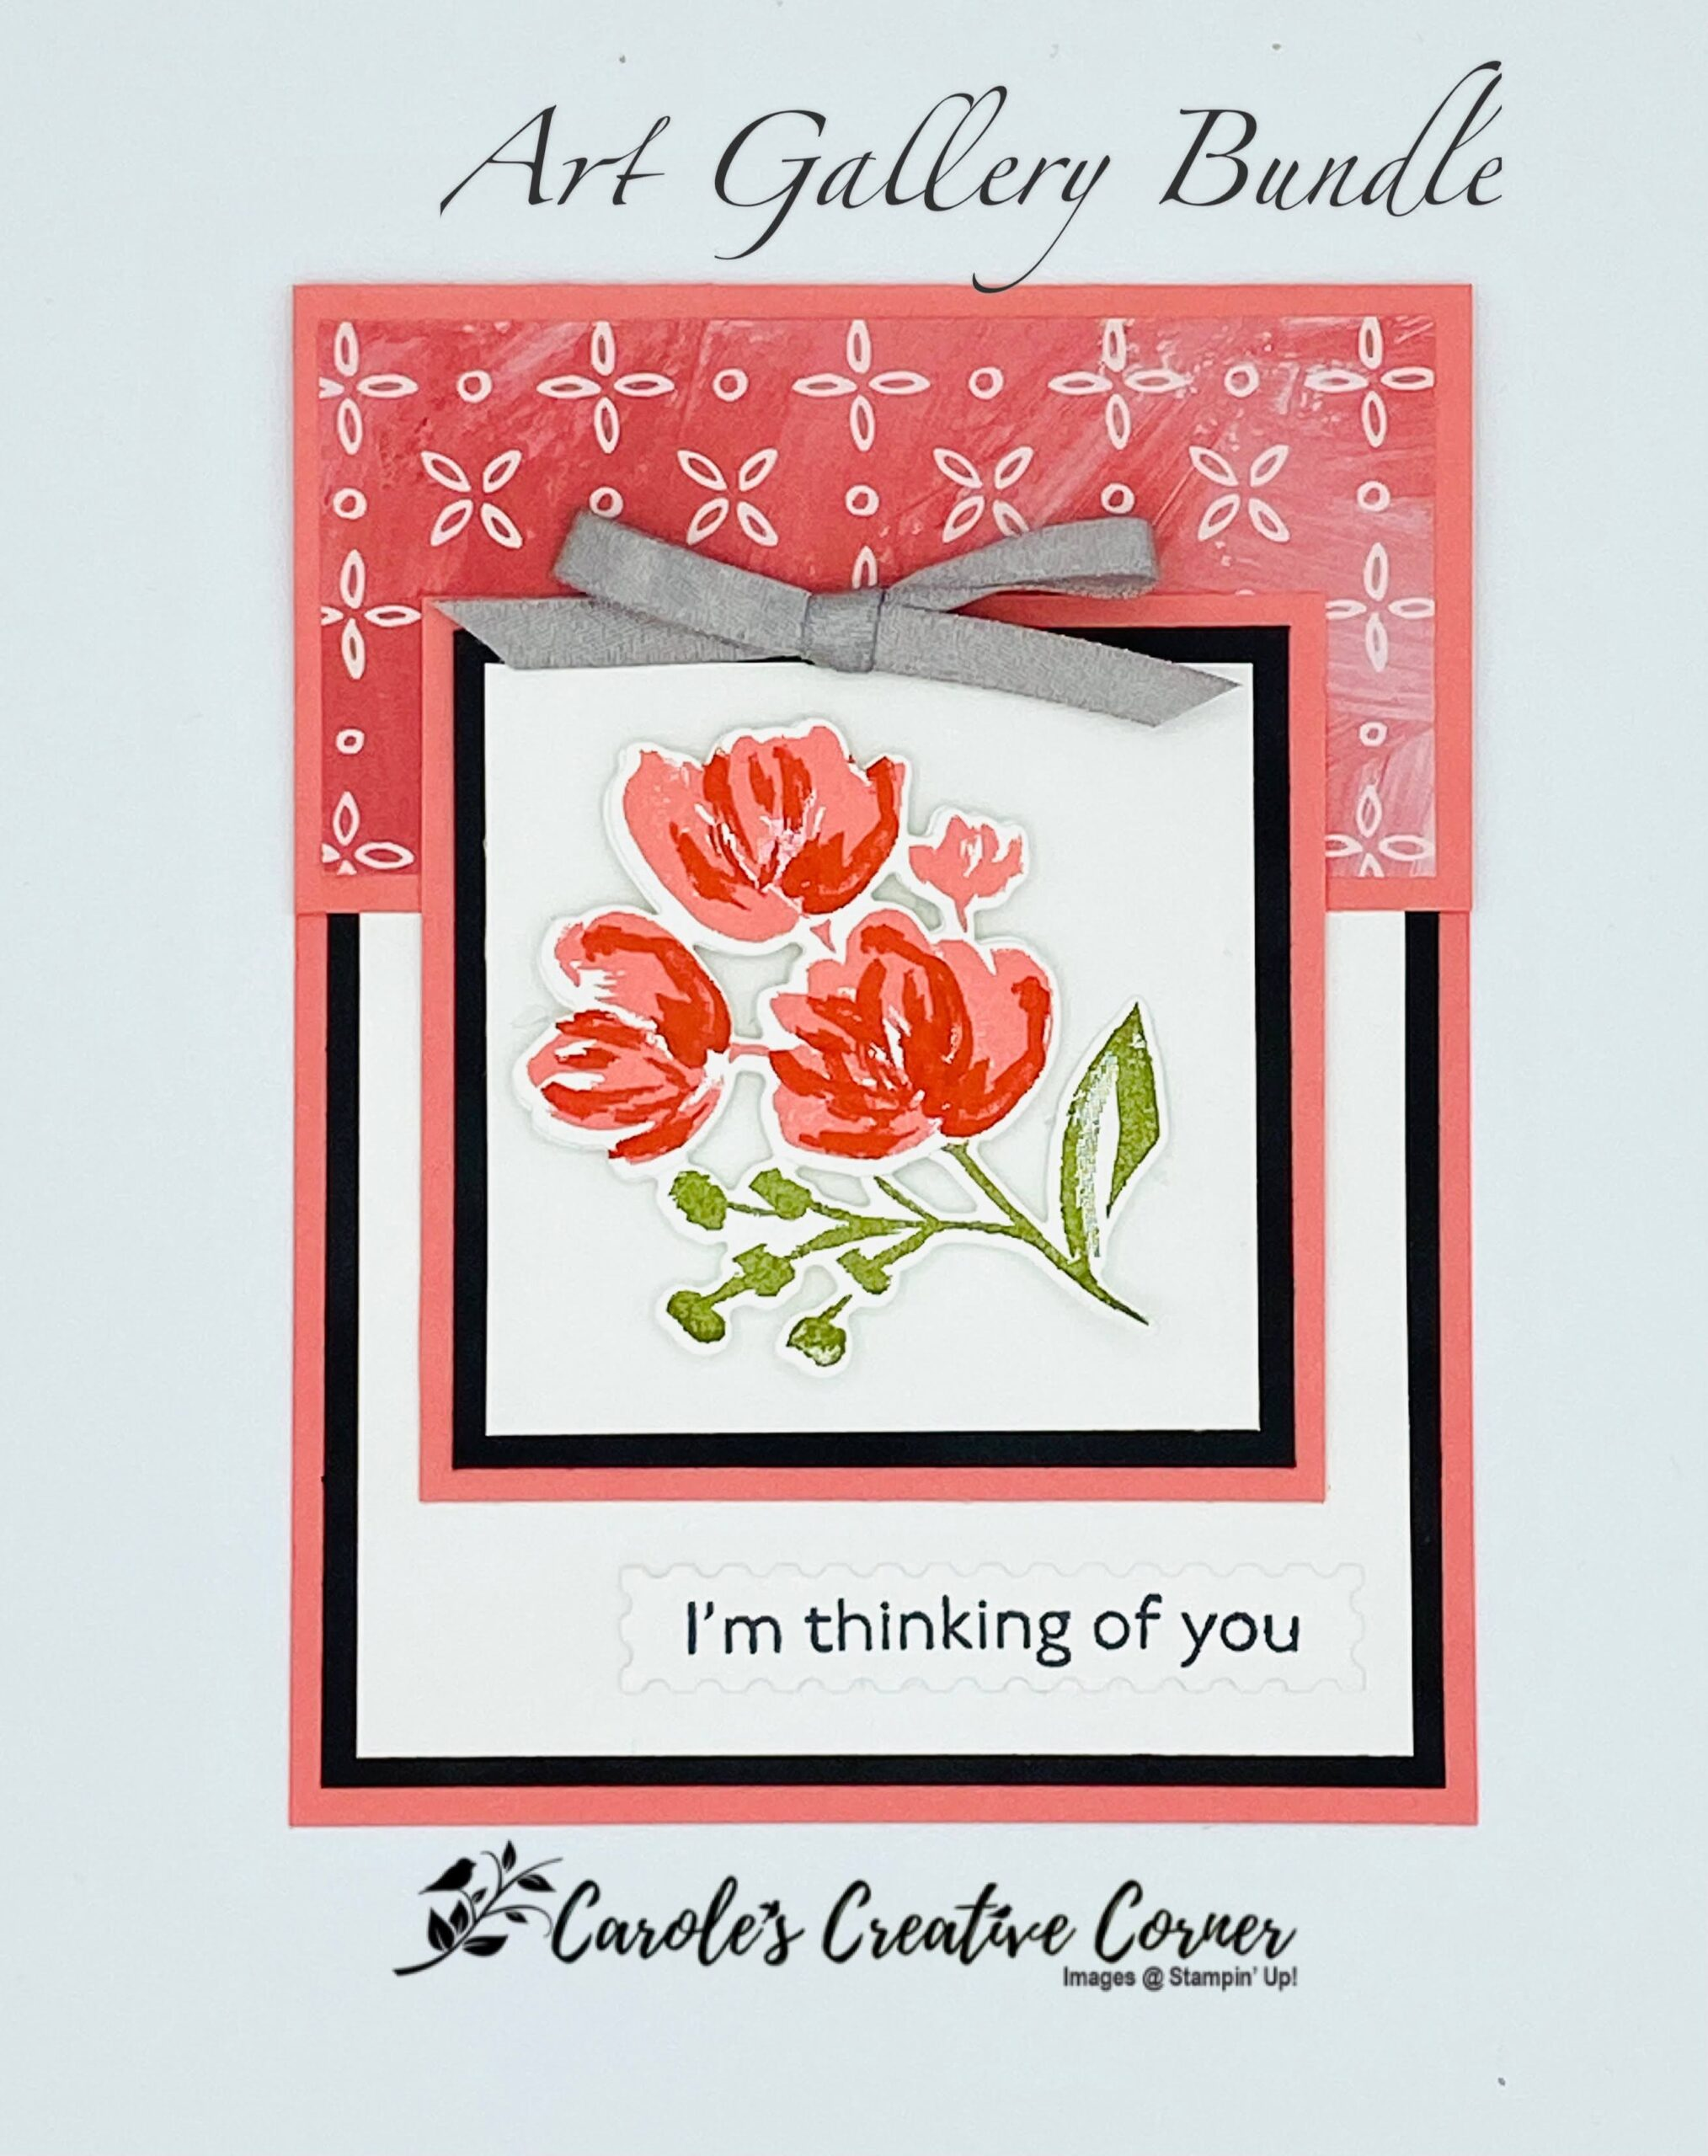 Art Gallery Bundle Thinking of You Card